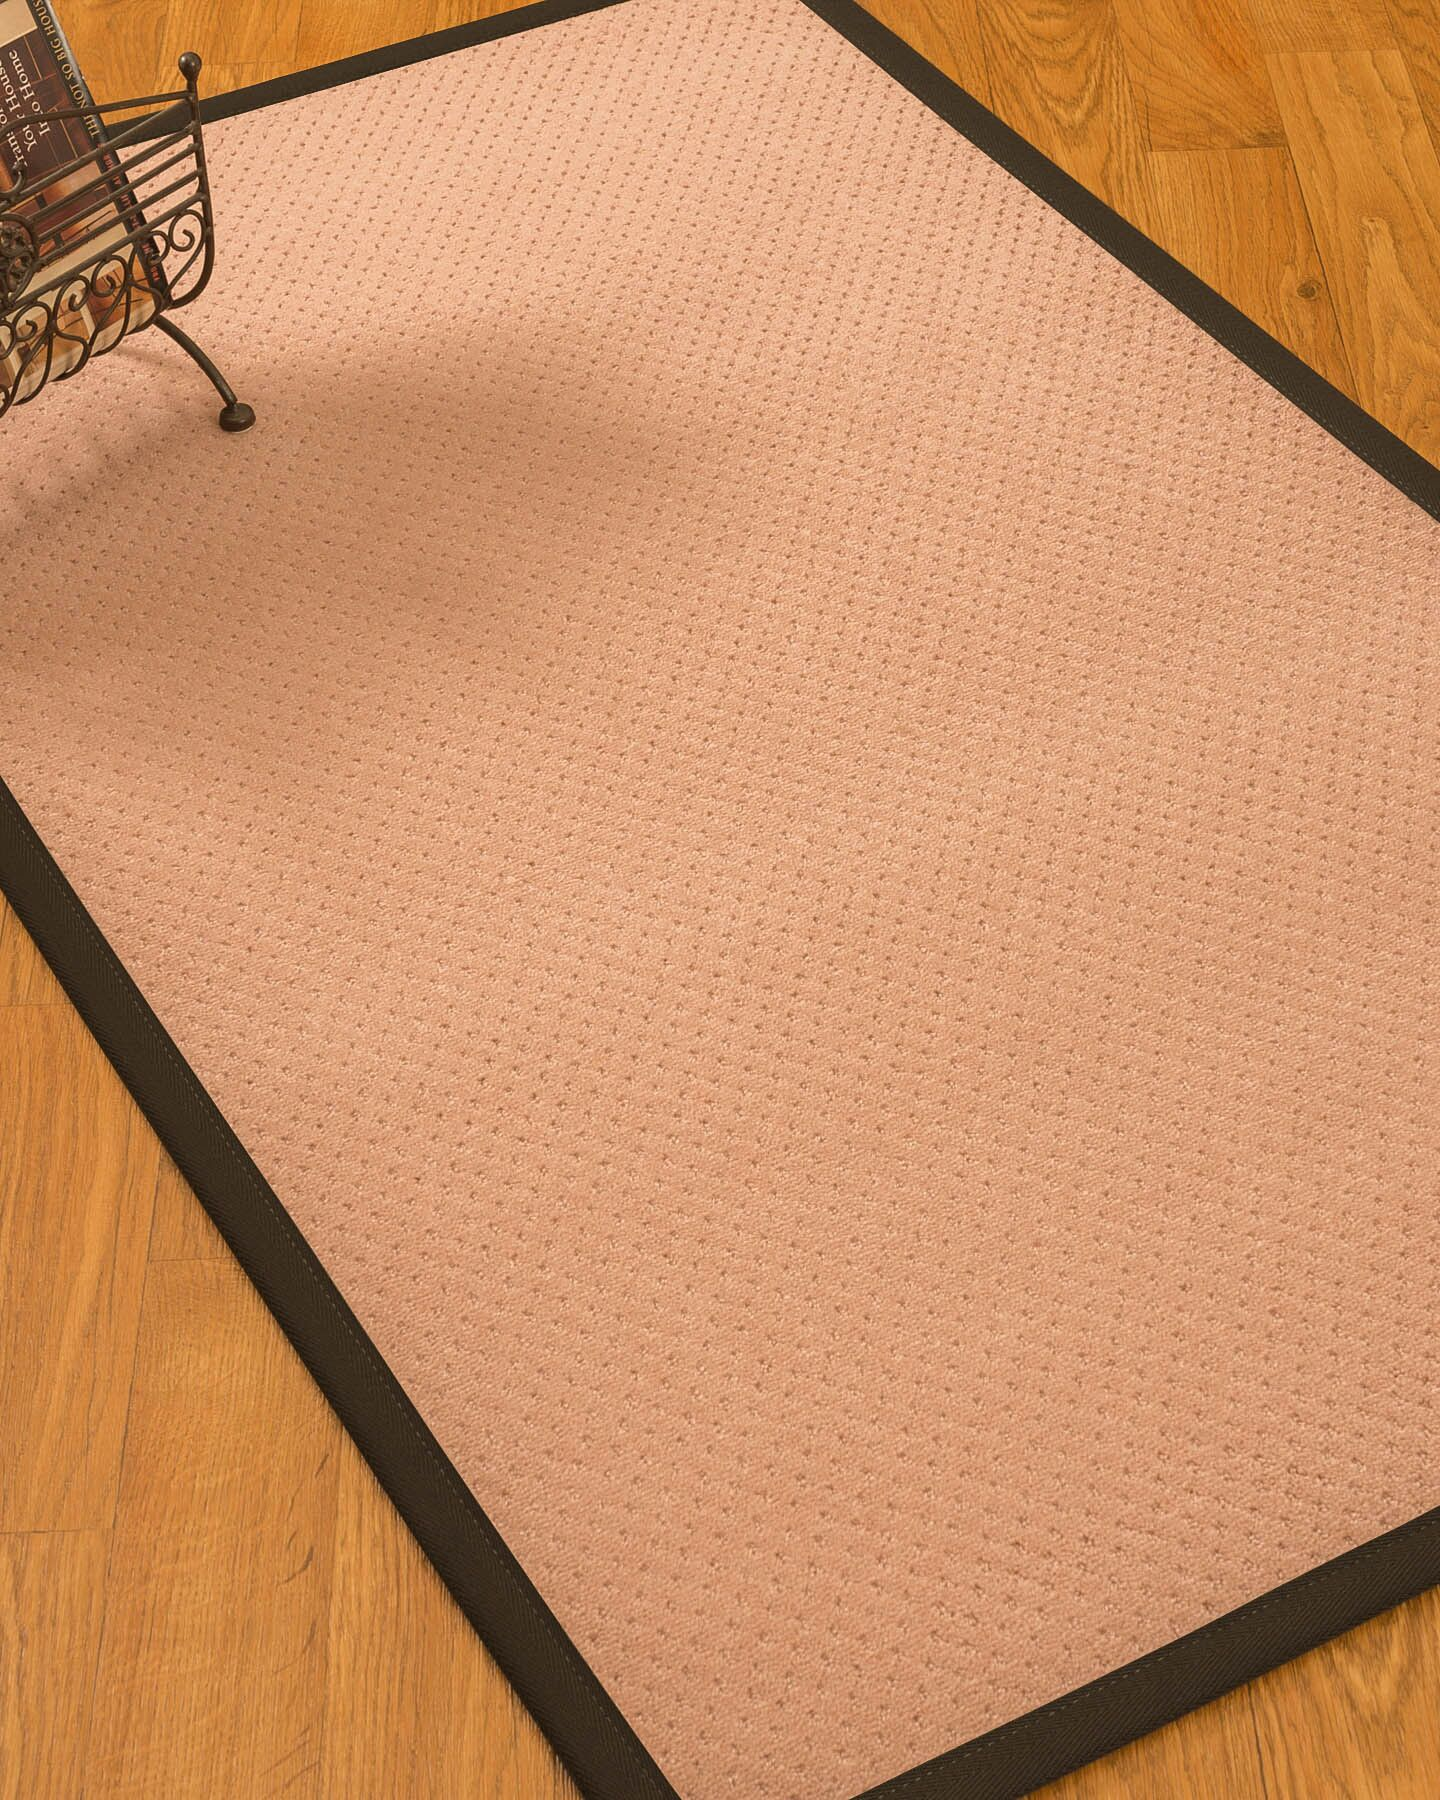 Farnham Border Hand-Woven Wool Pink/Fudge Area Rug Rug Size: Rectangle 5' x 8', Rug Pad Included: Yes